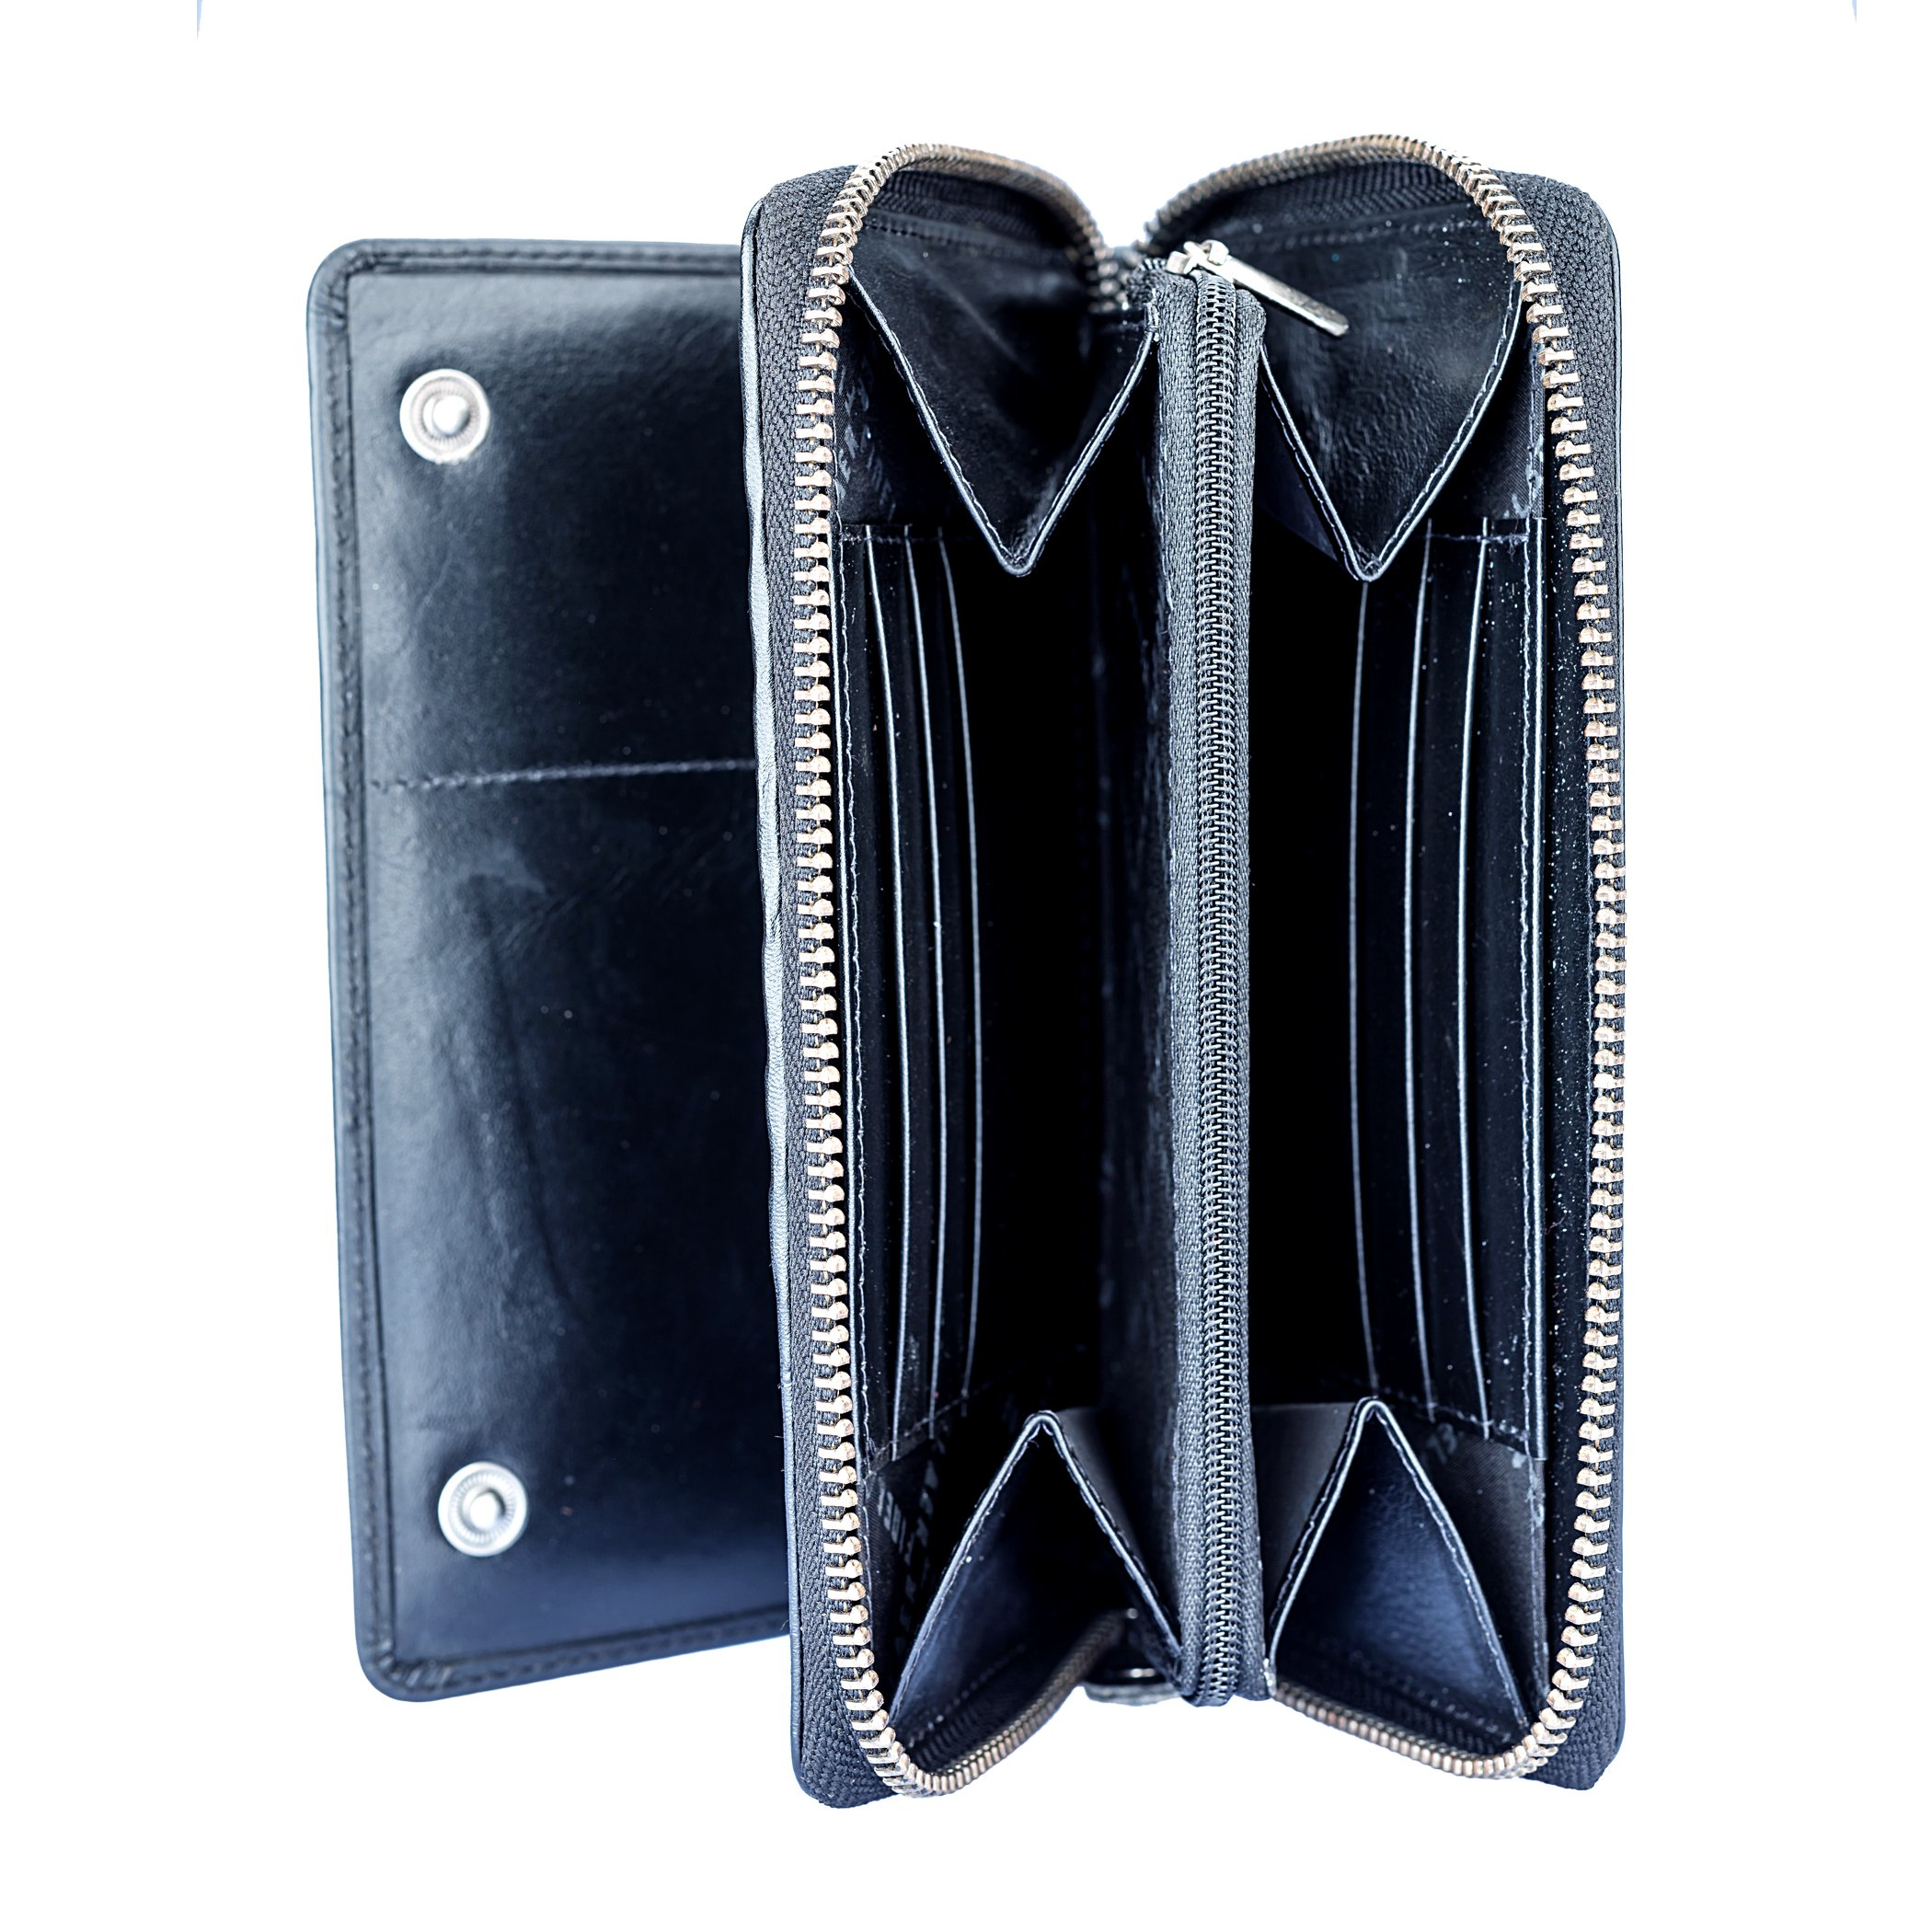 Leather Bifold Travel Wallet Passport Black|Finelaer by FINELAER (Image #3)